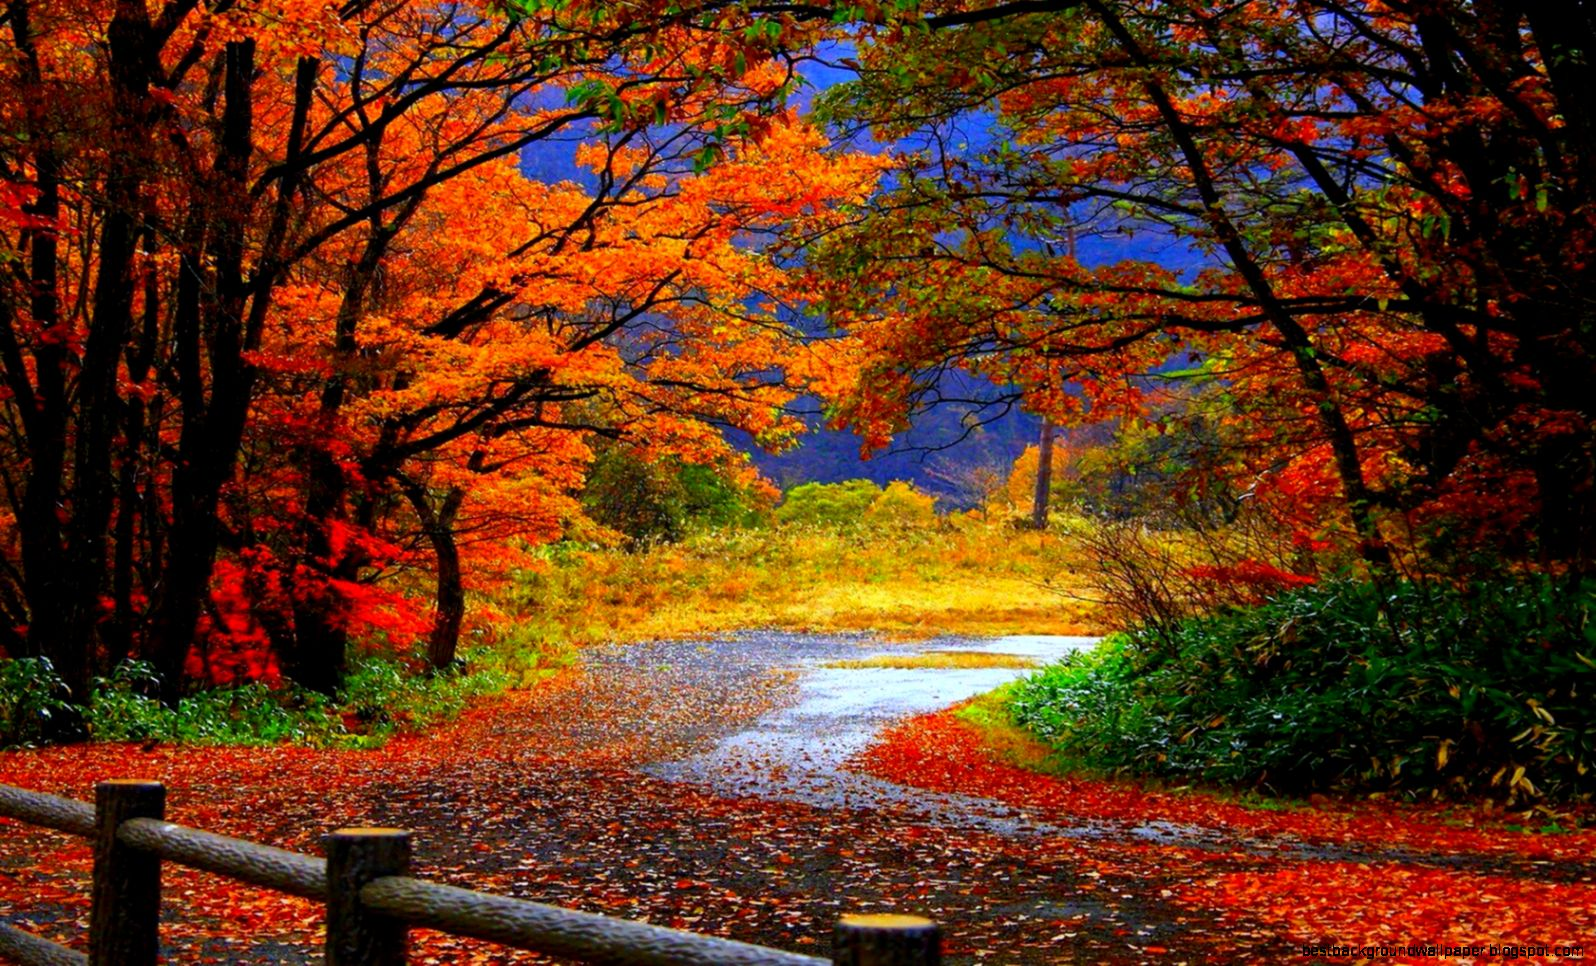 autumn wallpapers hd best - photo #23